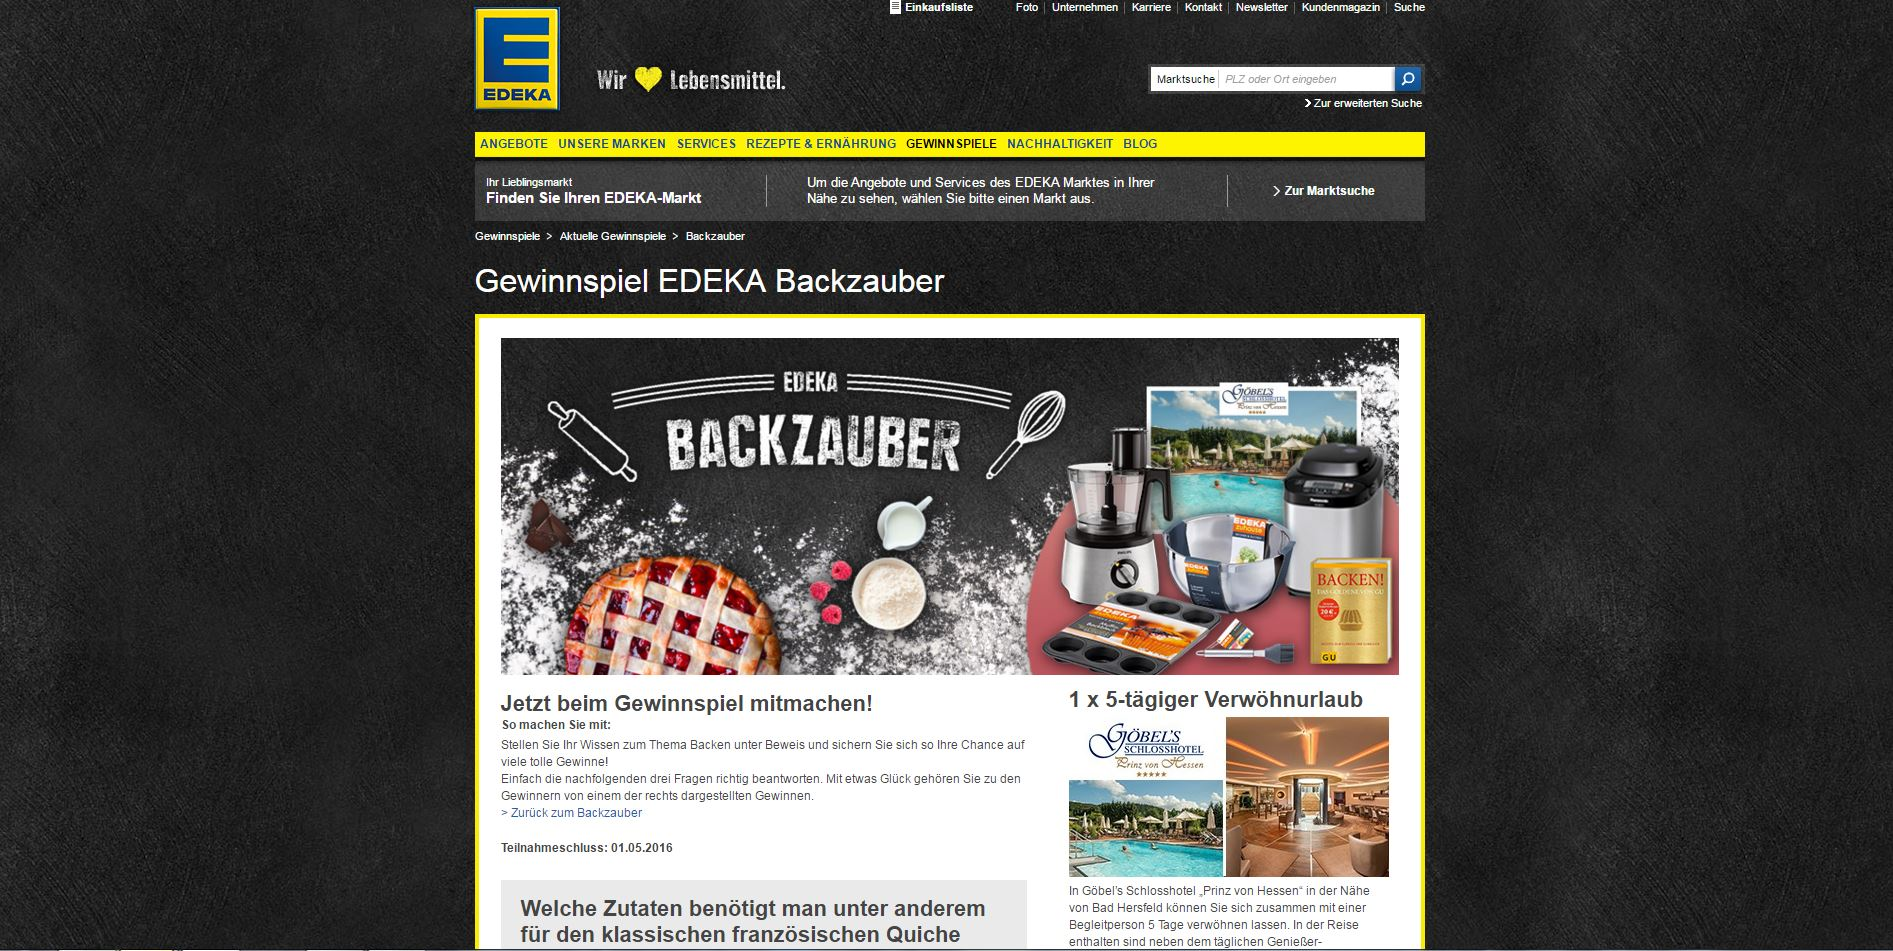 edeka backzauber gewinnspiel wellness reise gewinnen. Black Bedroom Furniture Sets. Home Design Ideas